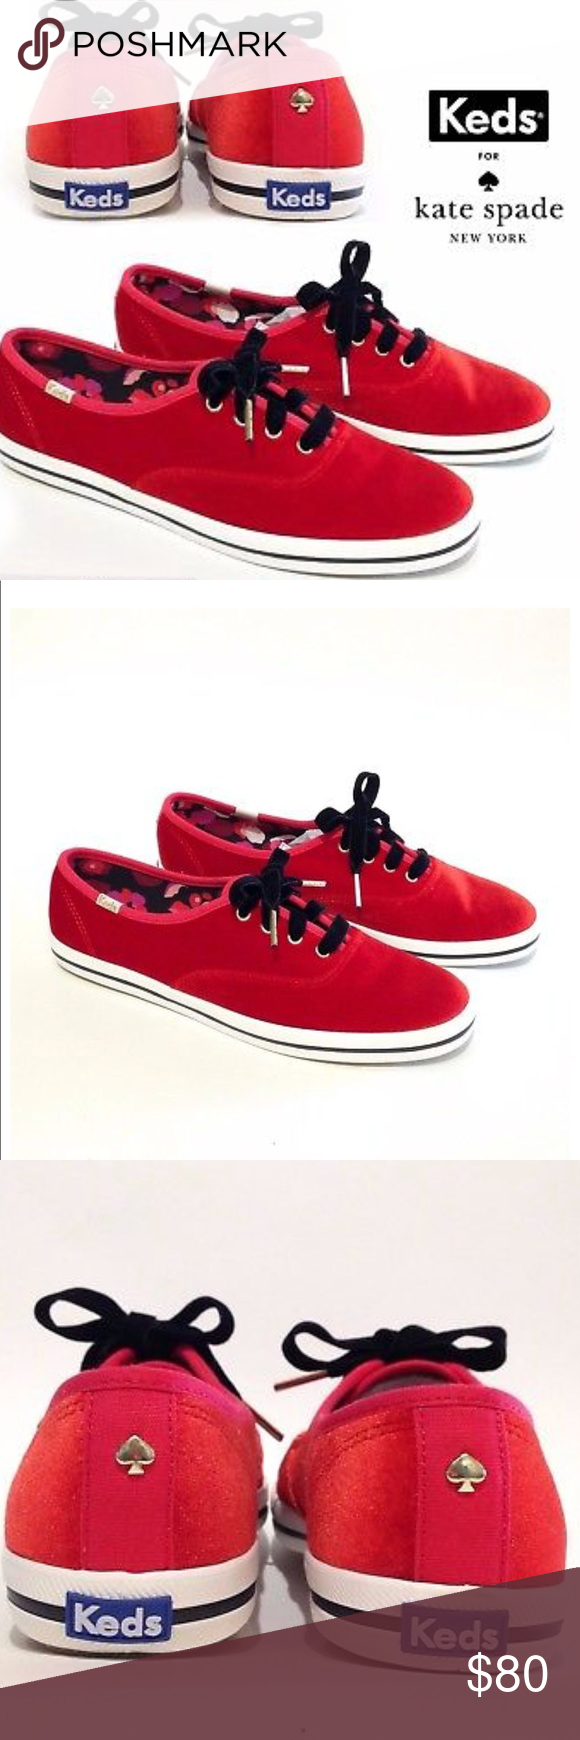 4ced5628ea1a NWT KATE SPADE KEDS Velvet Lace-Up Sneaker 6 NWT Super fun red velvet X Kate  Spade Keds lace up sneaker. Canvas with red velvet and rubber sole.